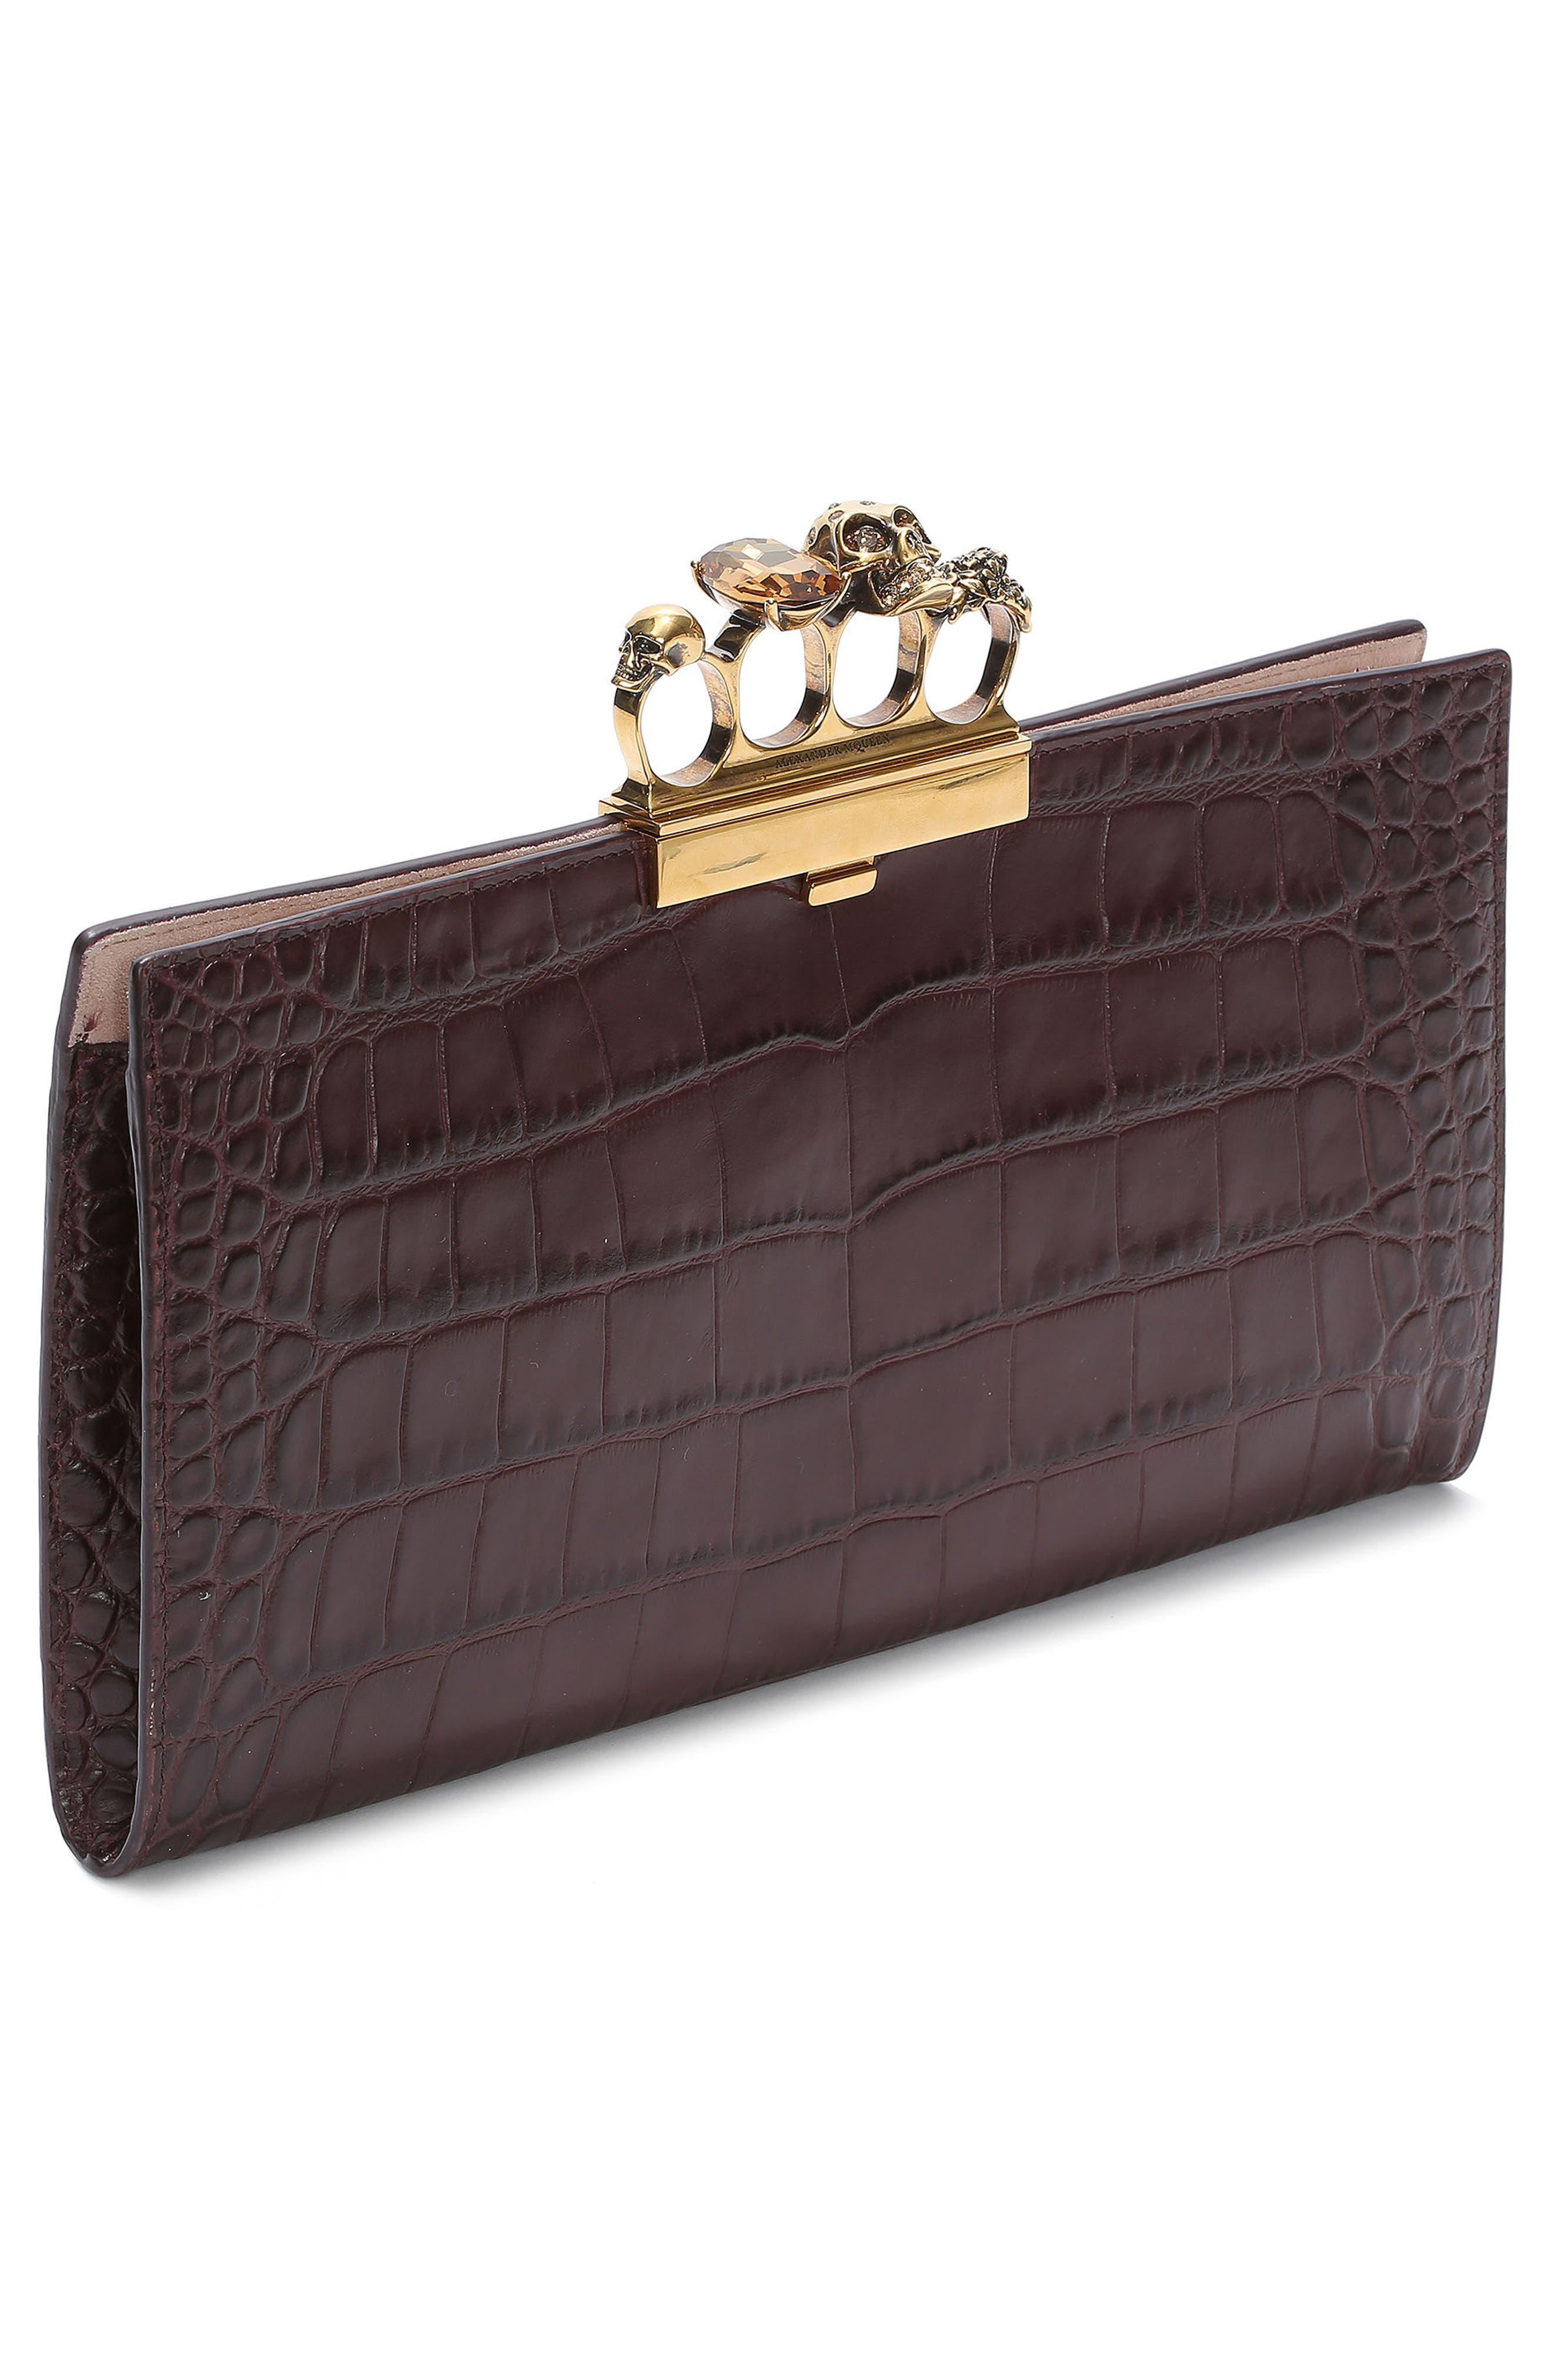 Croc Embossed Leather Knuckle Clutch,                             Alternate thumbnail 3, color,                             Burgundy